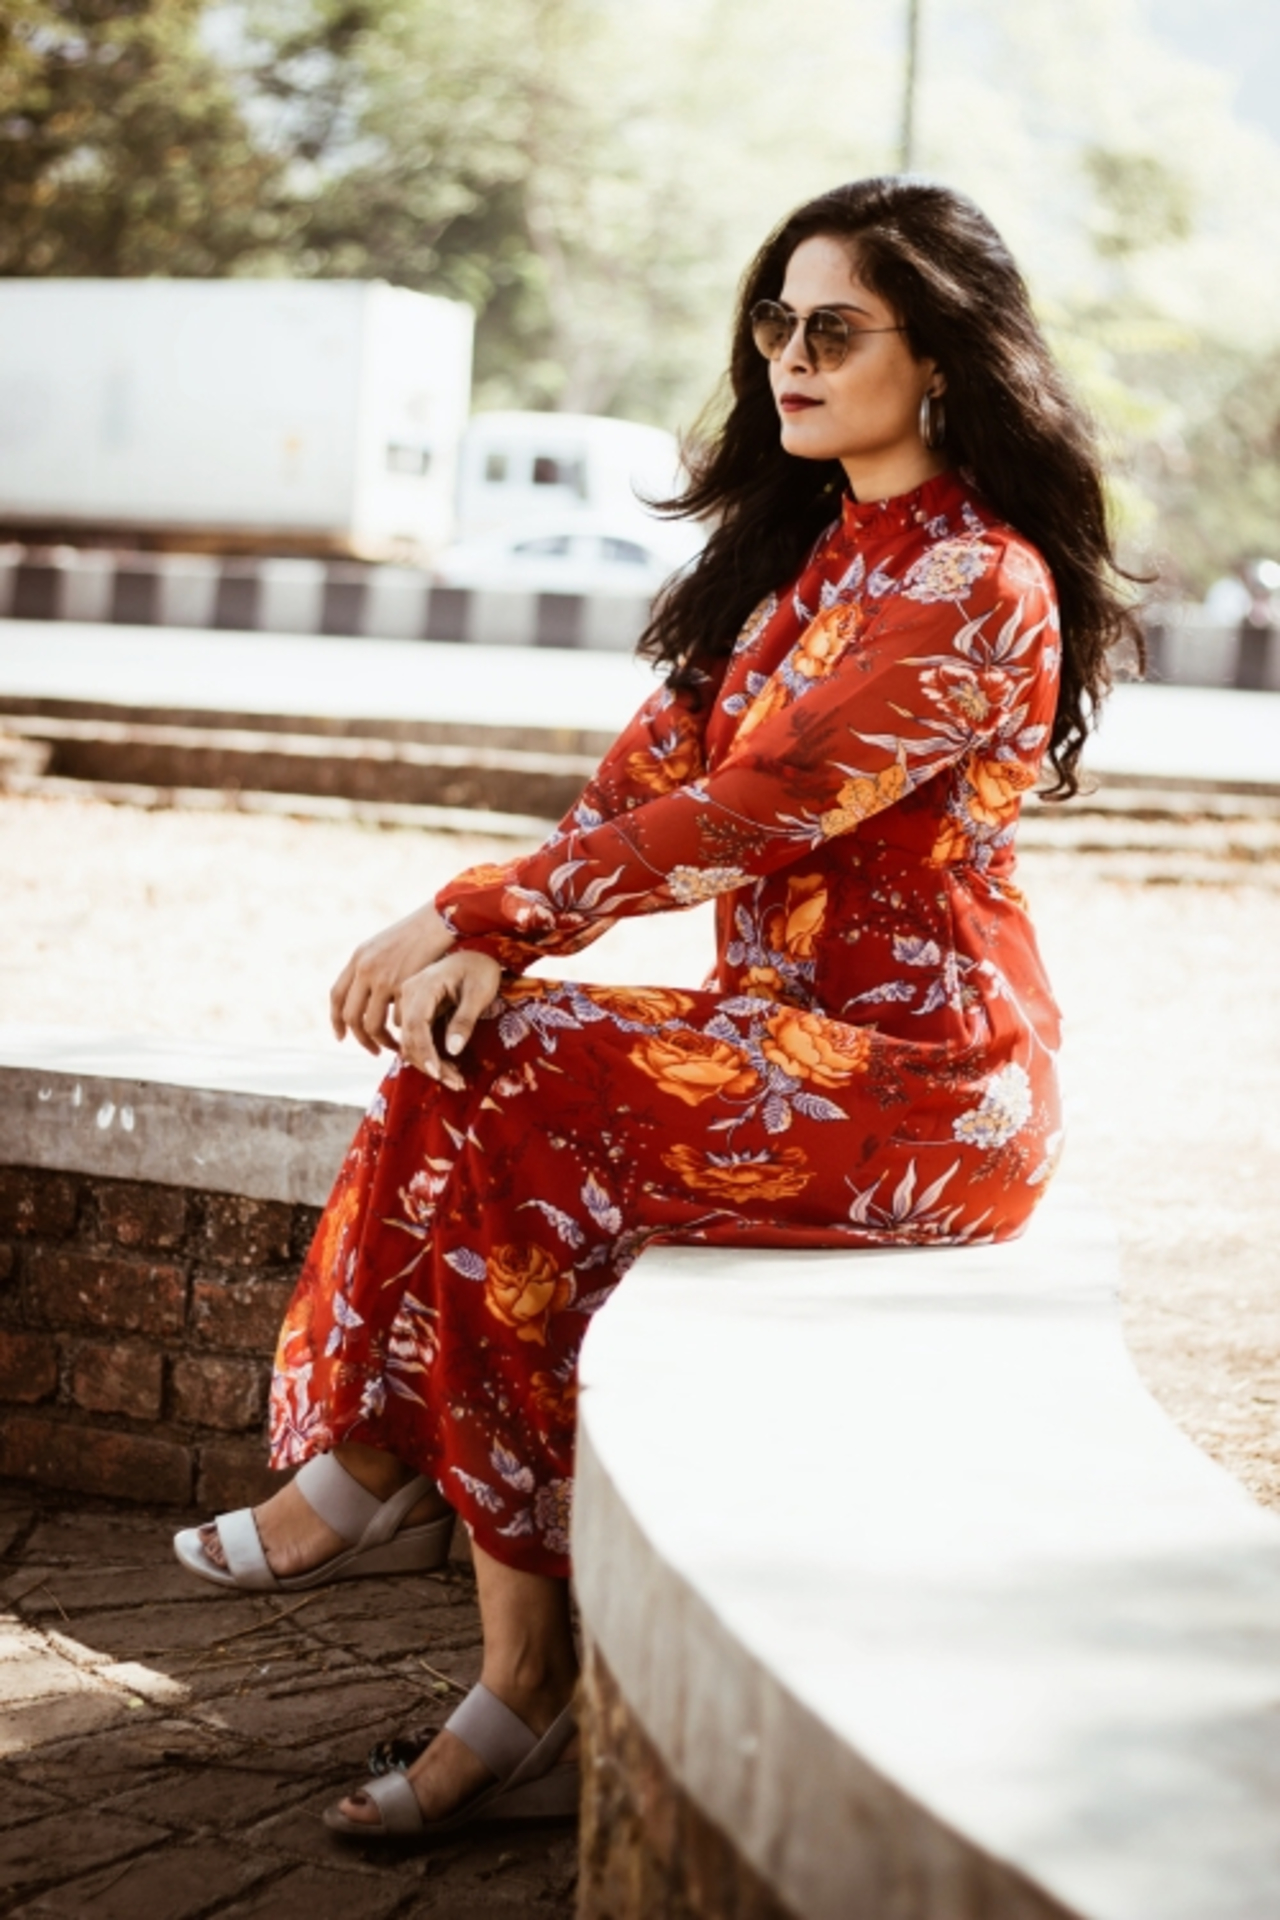 THE GLAM NUT - Floral midi dress 2